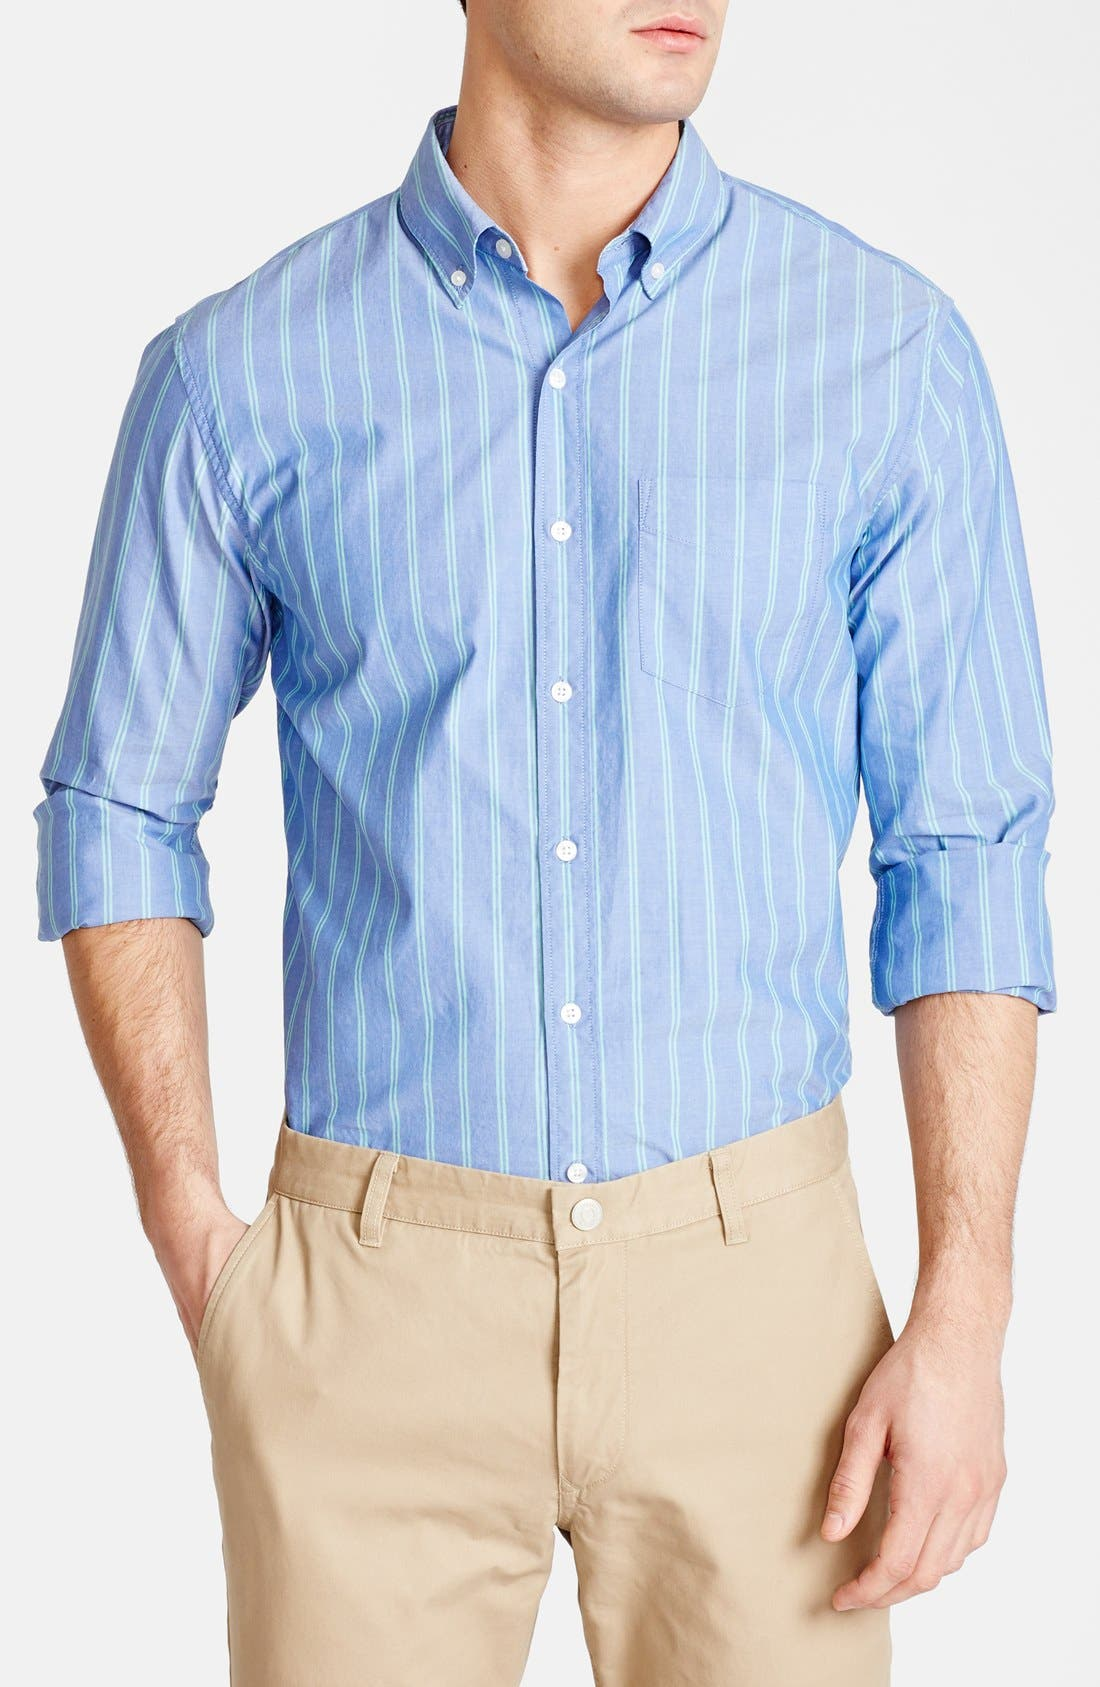 Main Image - Bonobos 'Glassop' Standard Fit Stripe Sport Shirt